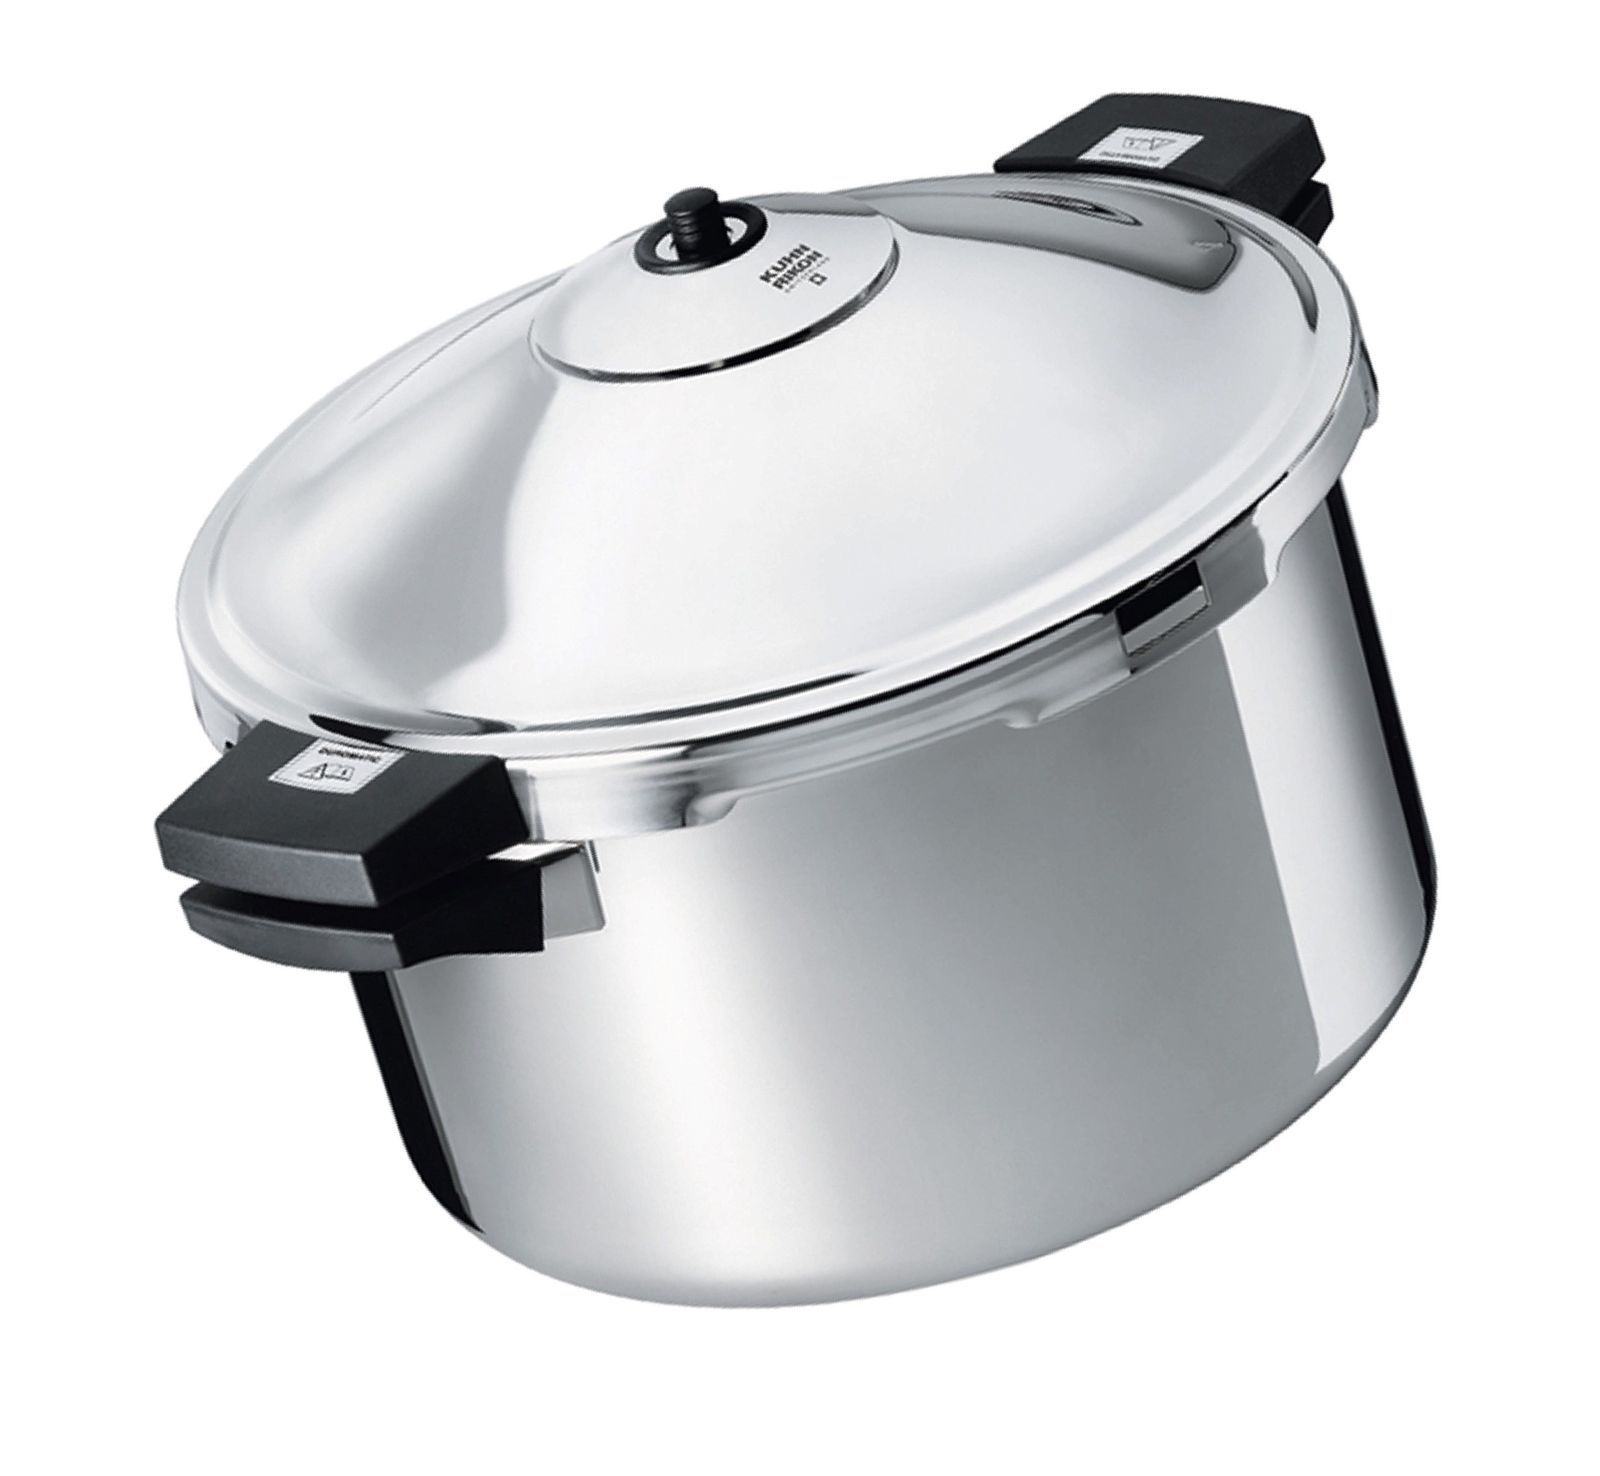 Kuhn Rikon Duromatic Hotel Stainless Steel Pressure Cooker with Side Grips, 8...